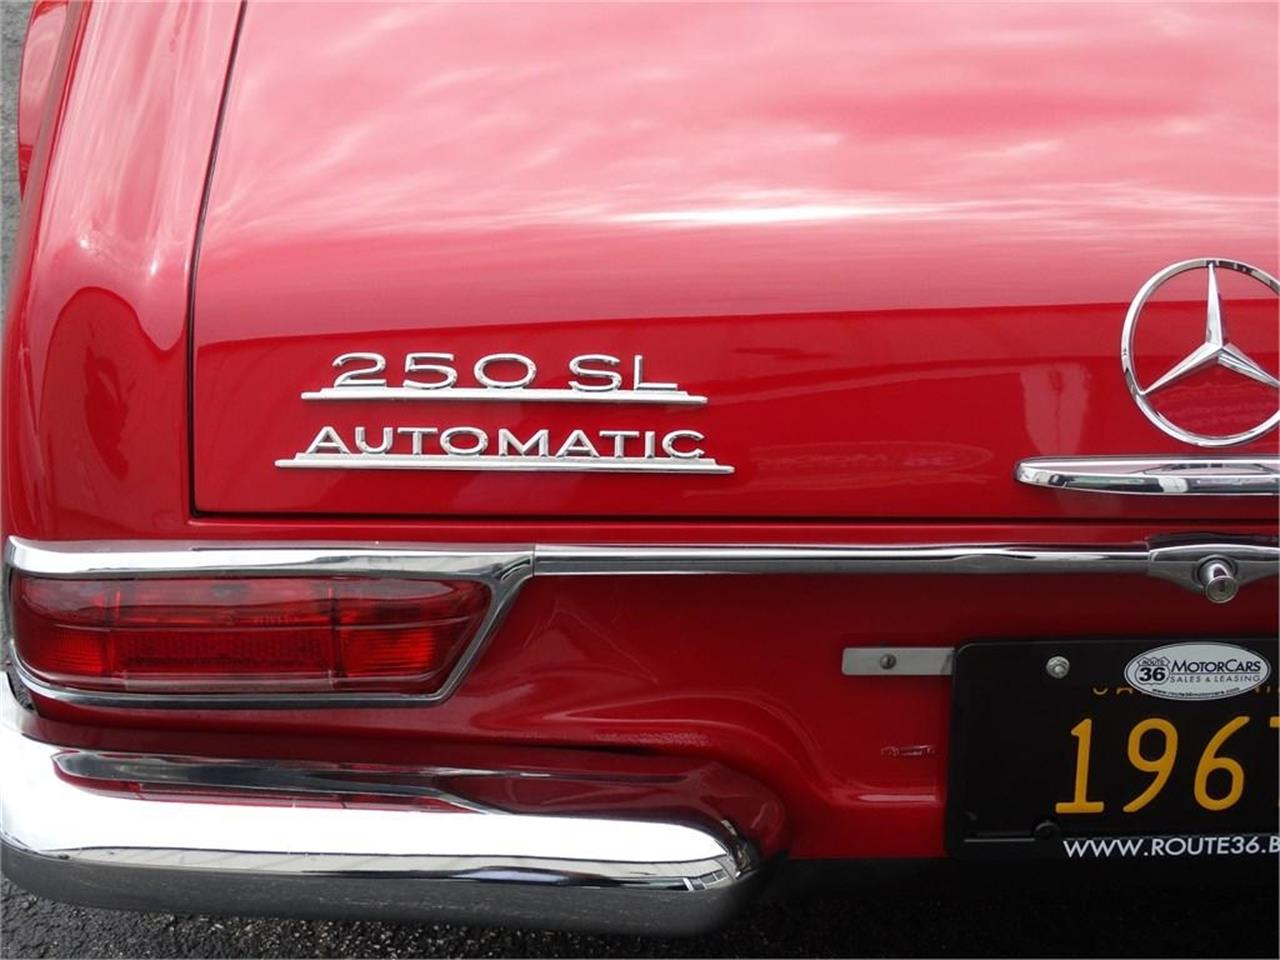 Large Picture of 1967 SL-Class located in Dublin Ohio Auction Vehicle - QDTZ